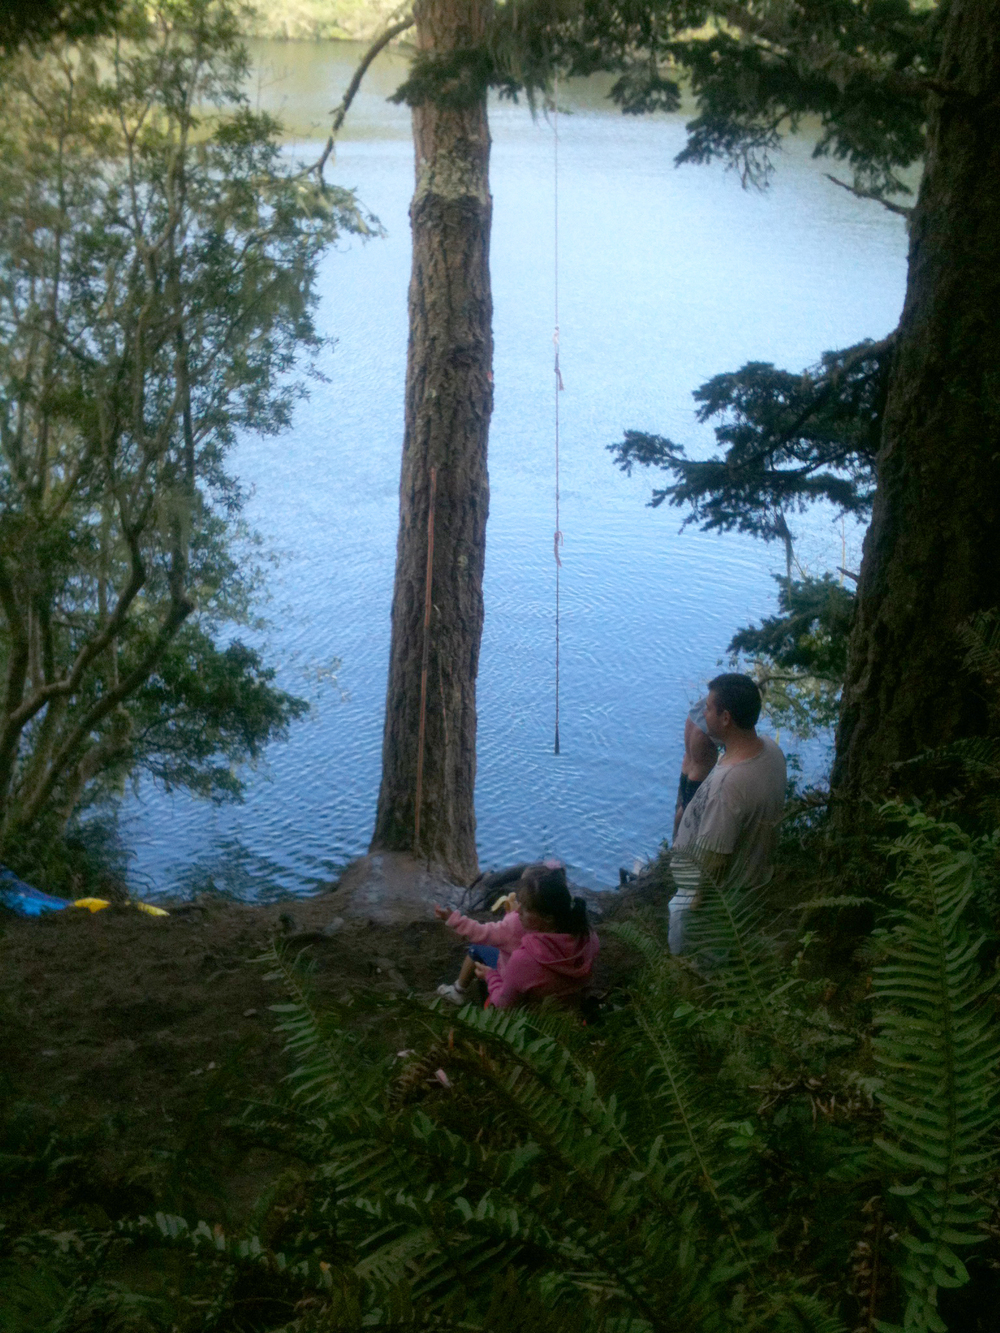 The first of two lakes we found on the trail. We found a family finishing up swimming. We're going to come back and use that rope swing... or maybe return with thicker rope.